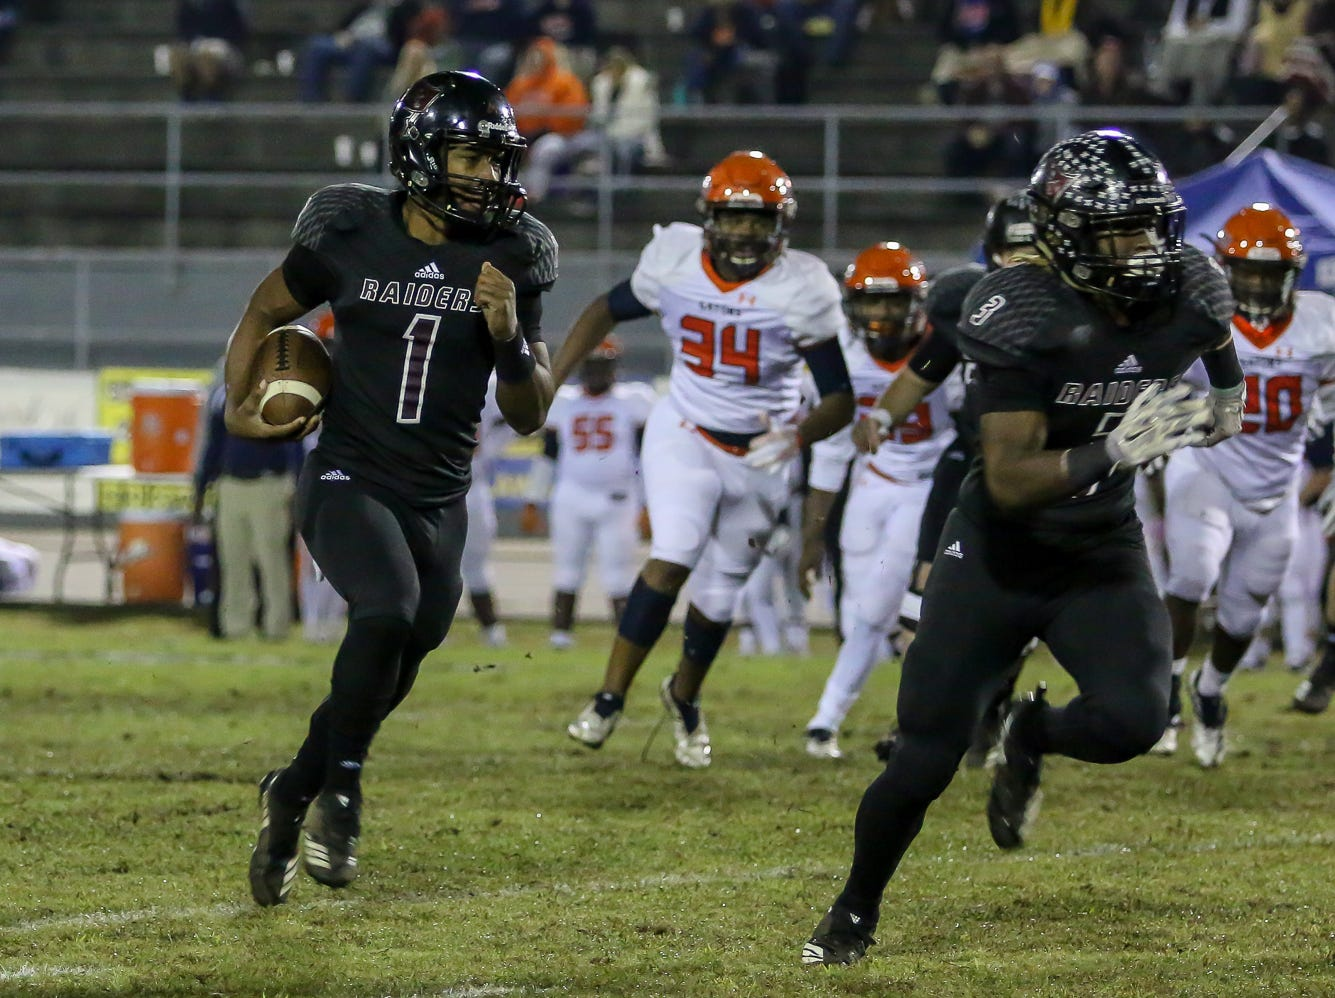 Navarre quarterback Marlon Courtney III (1) follows his lead blocker, Christopher Williams (3), and runs in for a 15-yard touchdown on the Raiders' first play against Escambia in the Region 1-6A Semifinal game at Navarre High School on Friday, November 16, 2018.